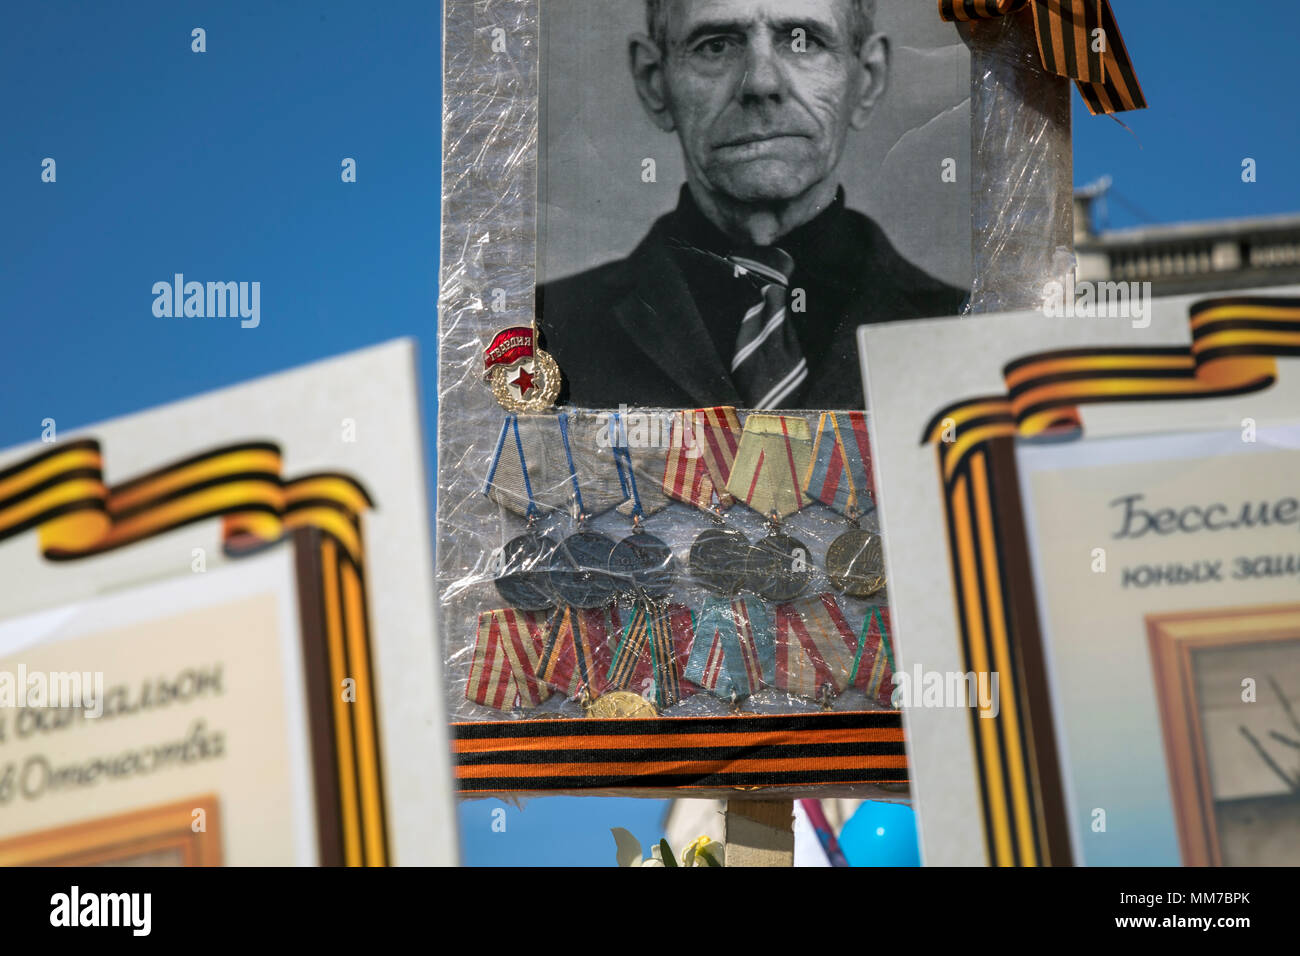 Moscow, Russia. 9th May, 2018. People holding portraits of World War soldiers walk down Moscow's Tverskaya street towards Red Square during the Immortal Regiment march in Moscow Credit: Nikolay Vinokurov/Alamy Live News - Stock Image